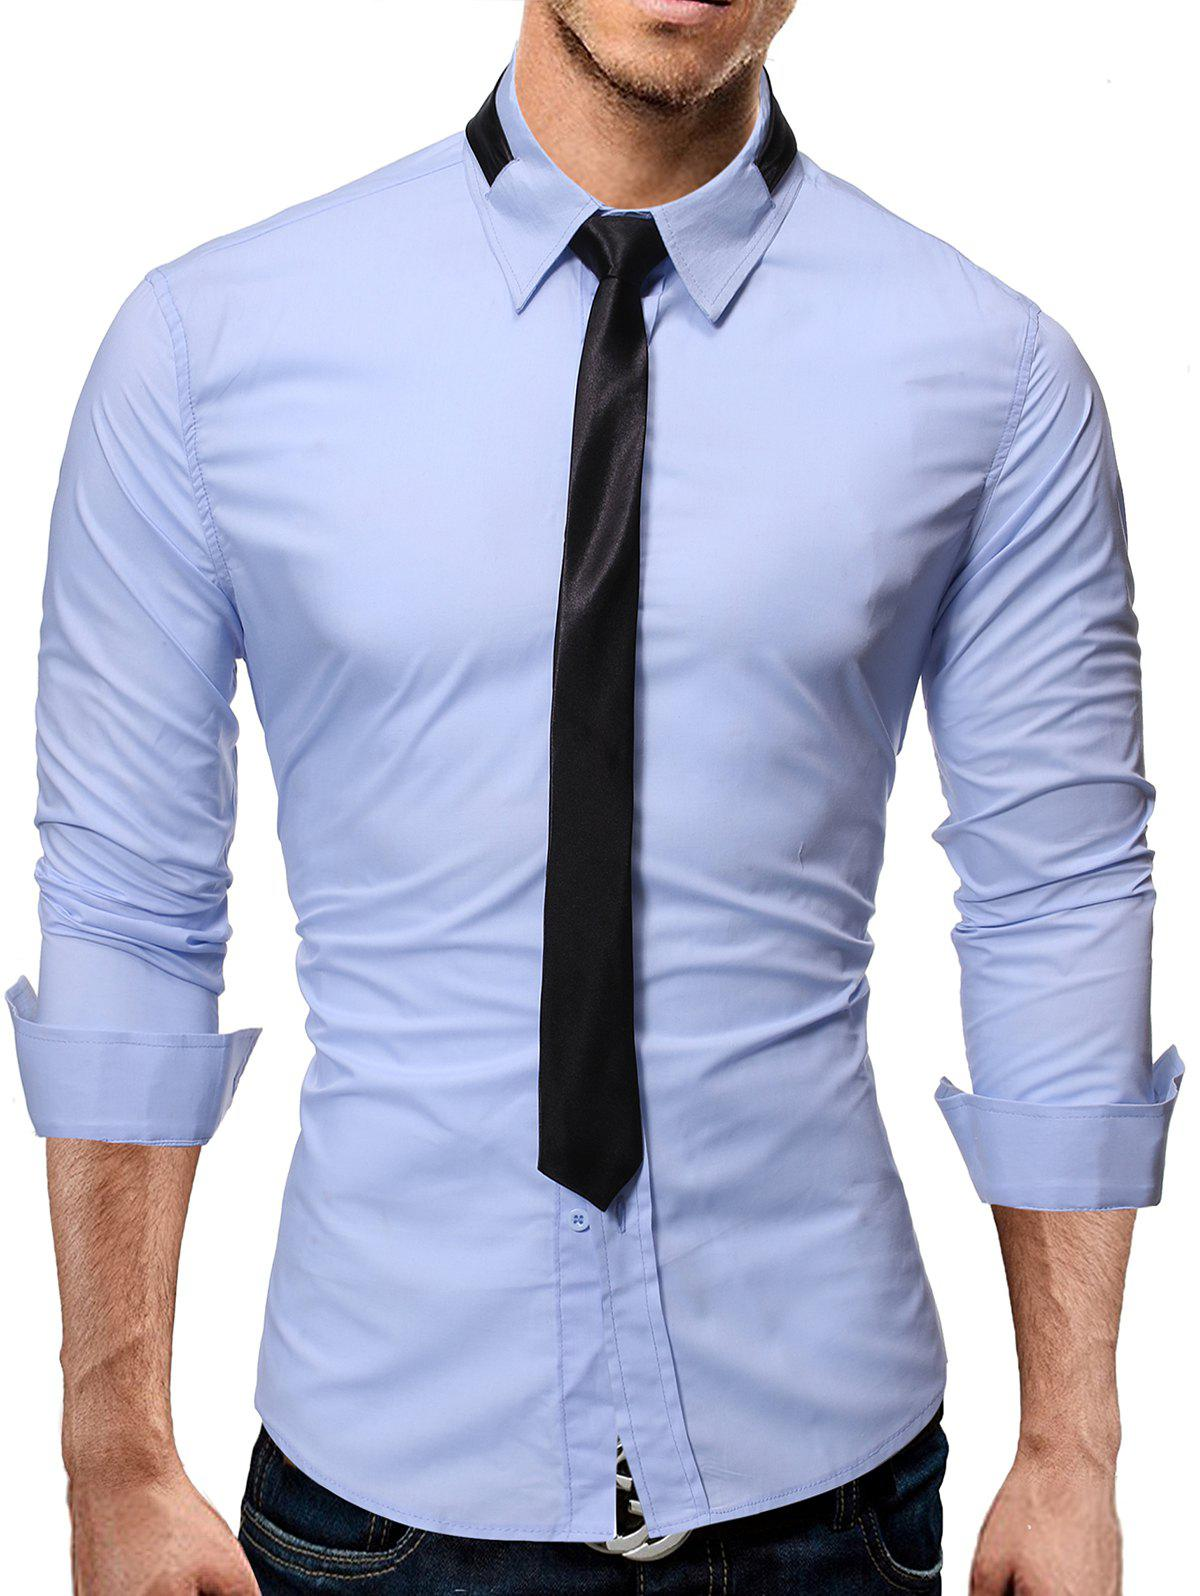 Solid Long Sleeve Slim Fit Button Up Shirt - LIGHT BLUE M